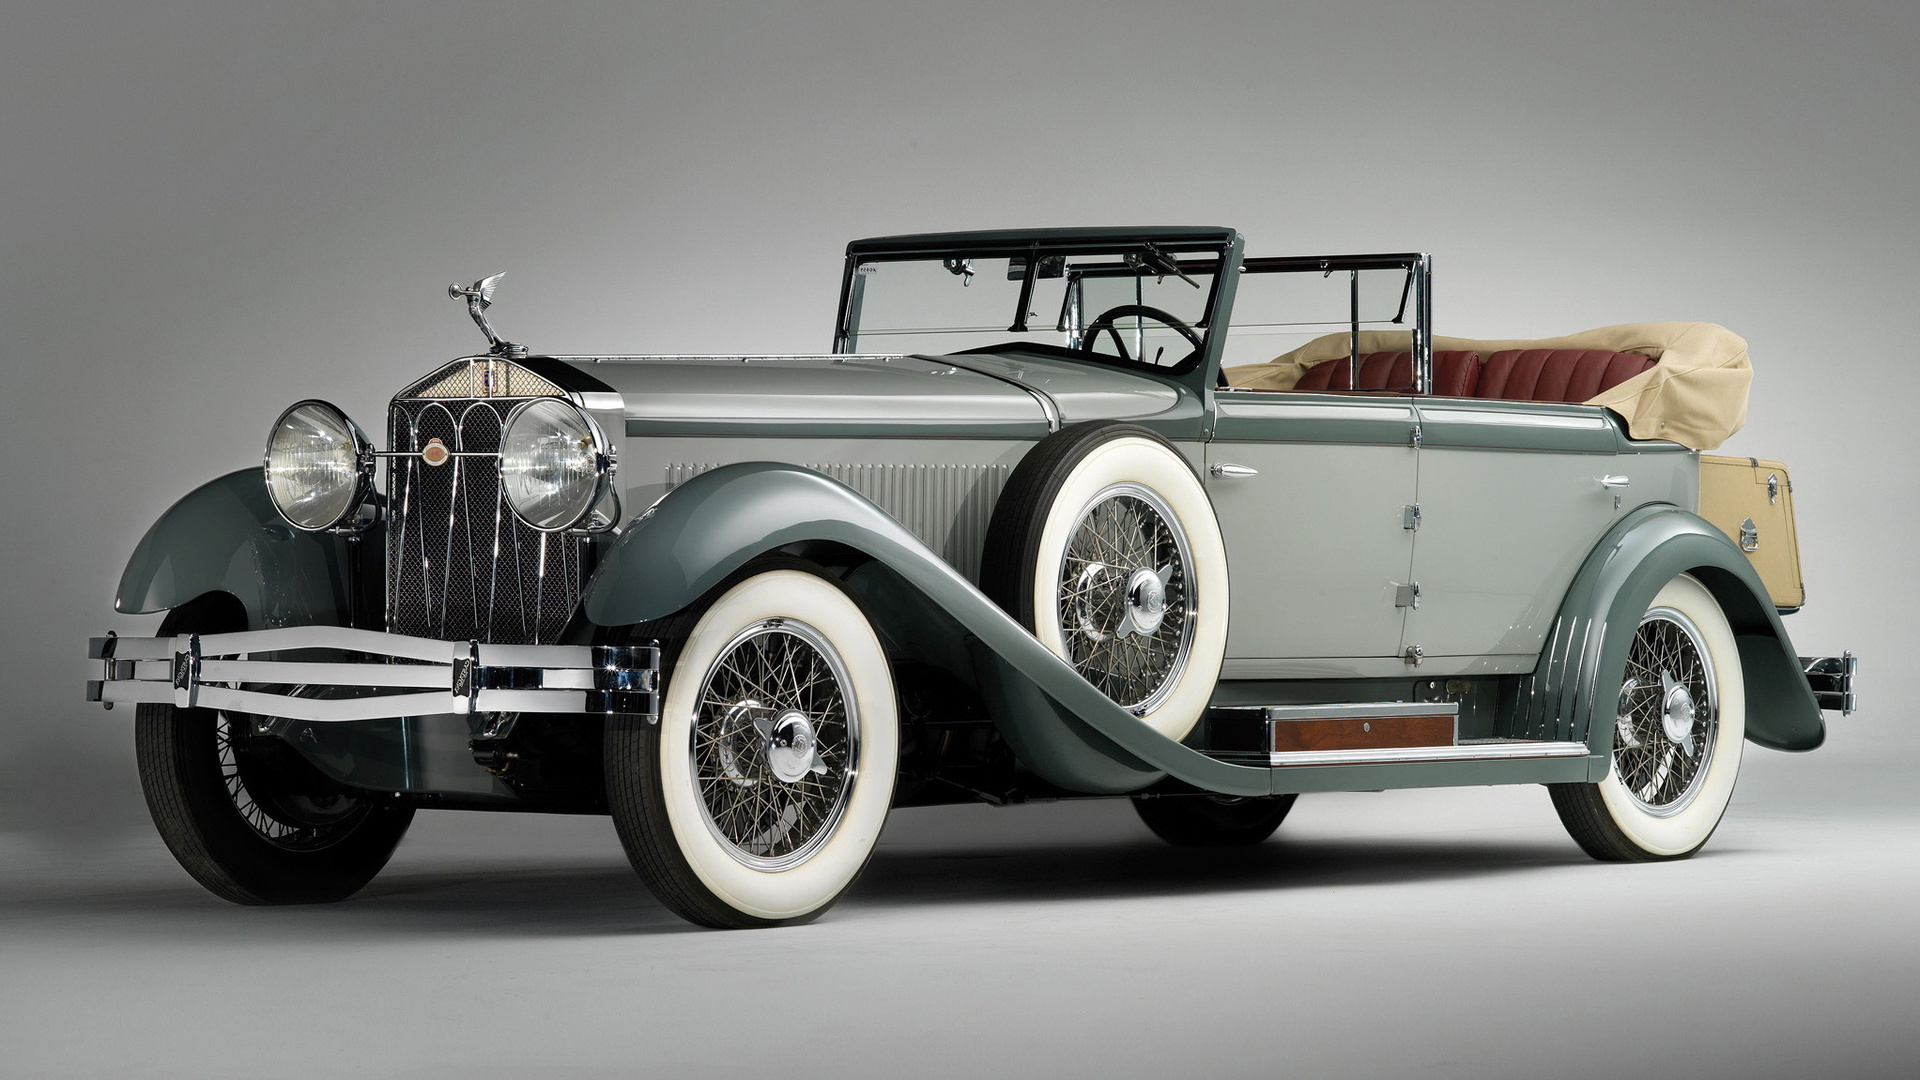 Antique Vintage Cars Wallpaper HD All About Gallery Car 1920x1080